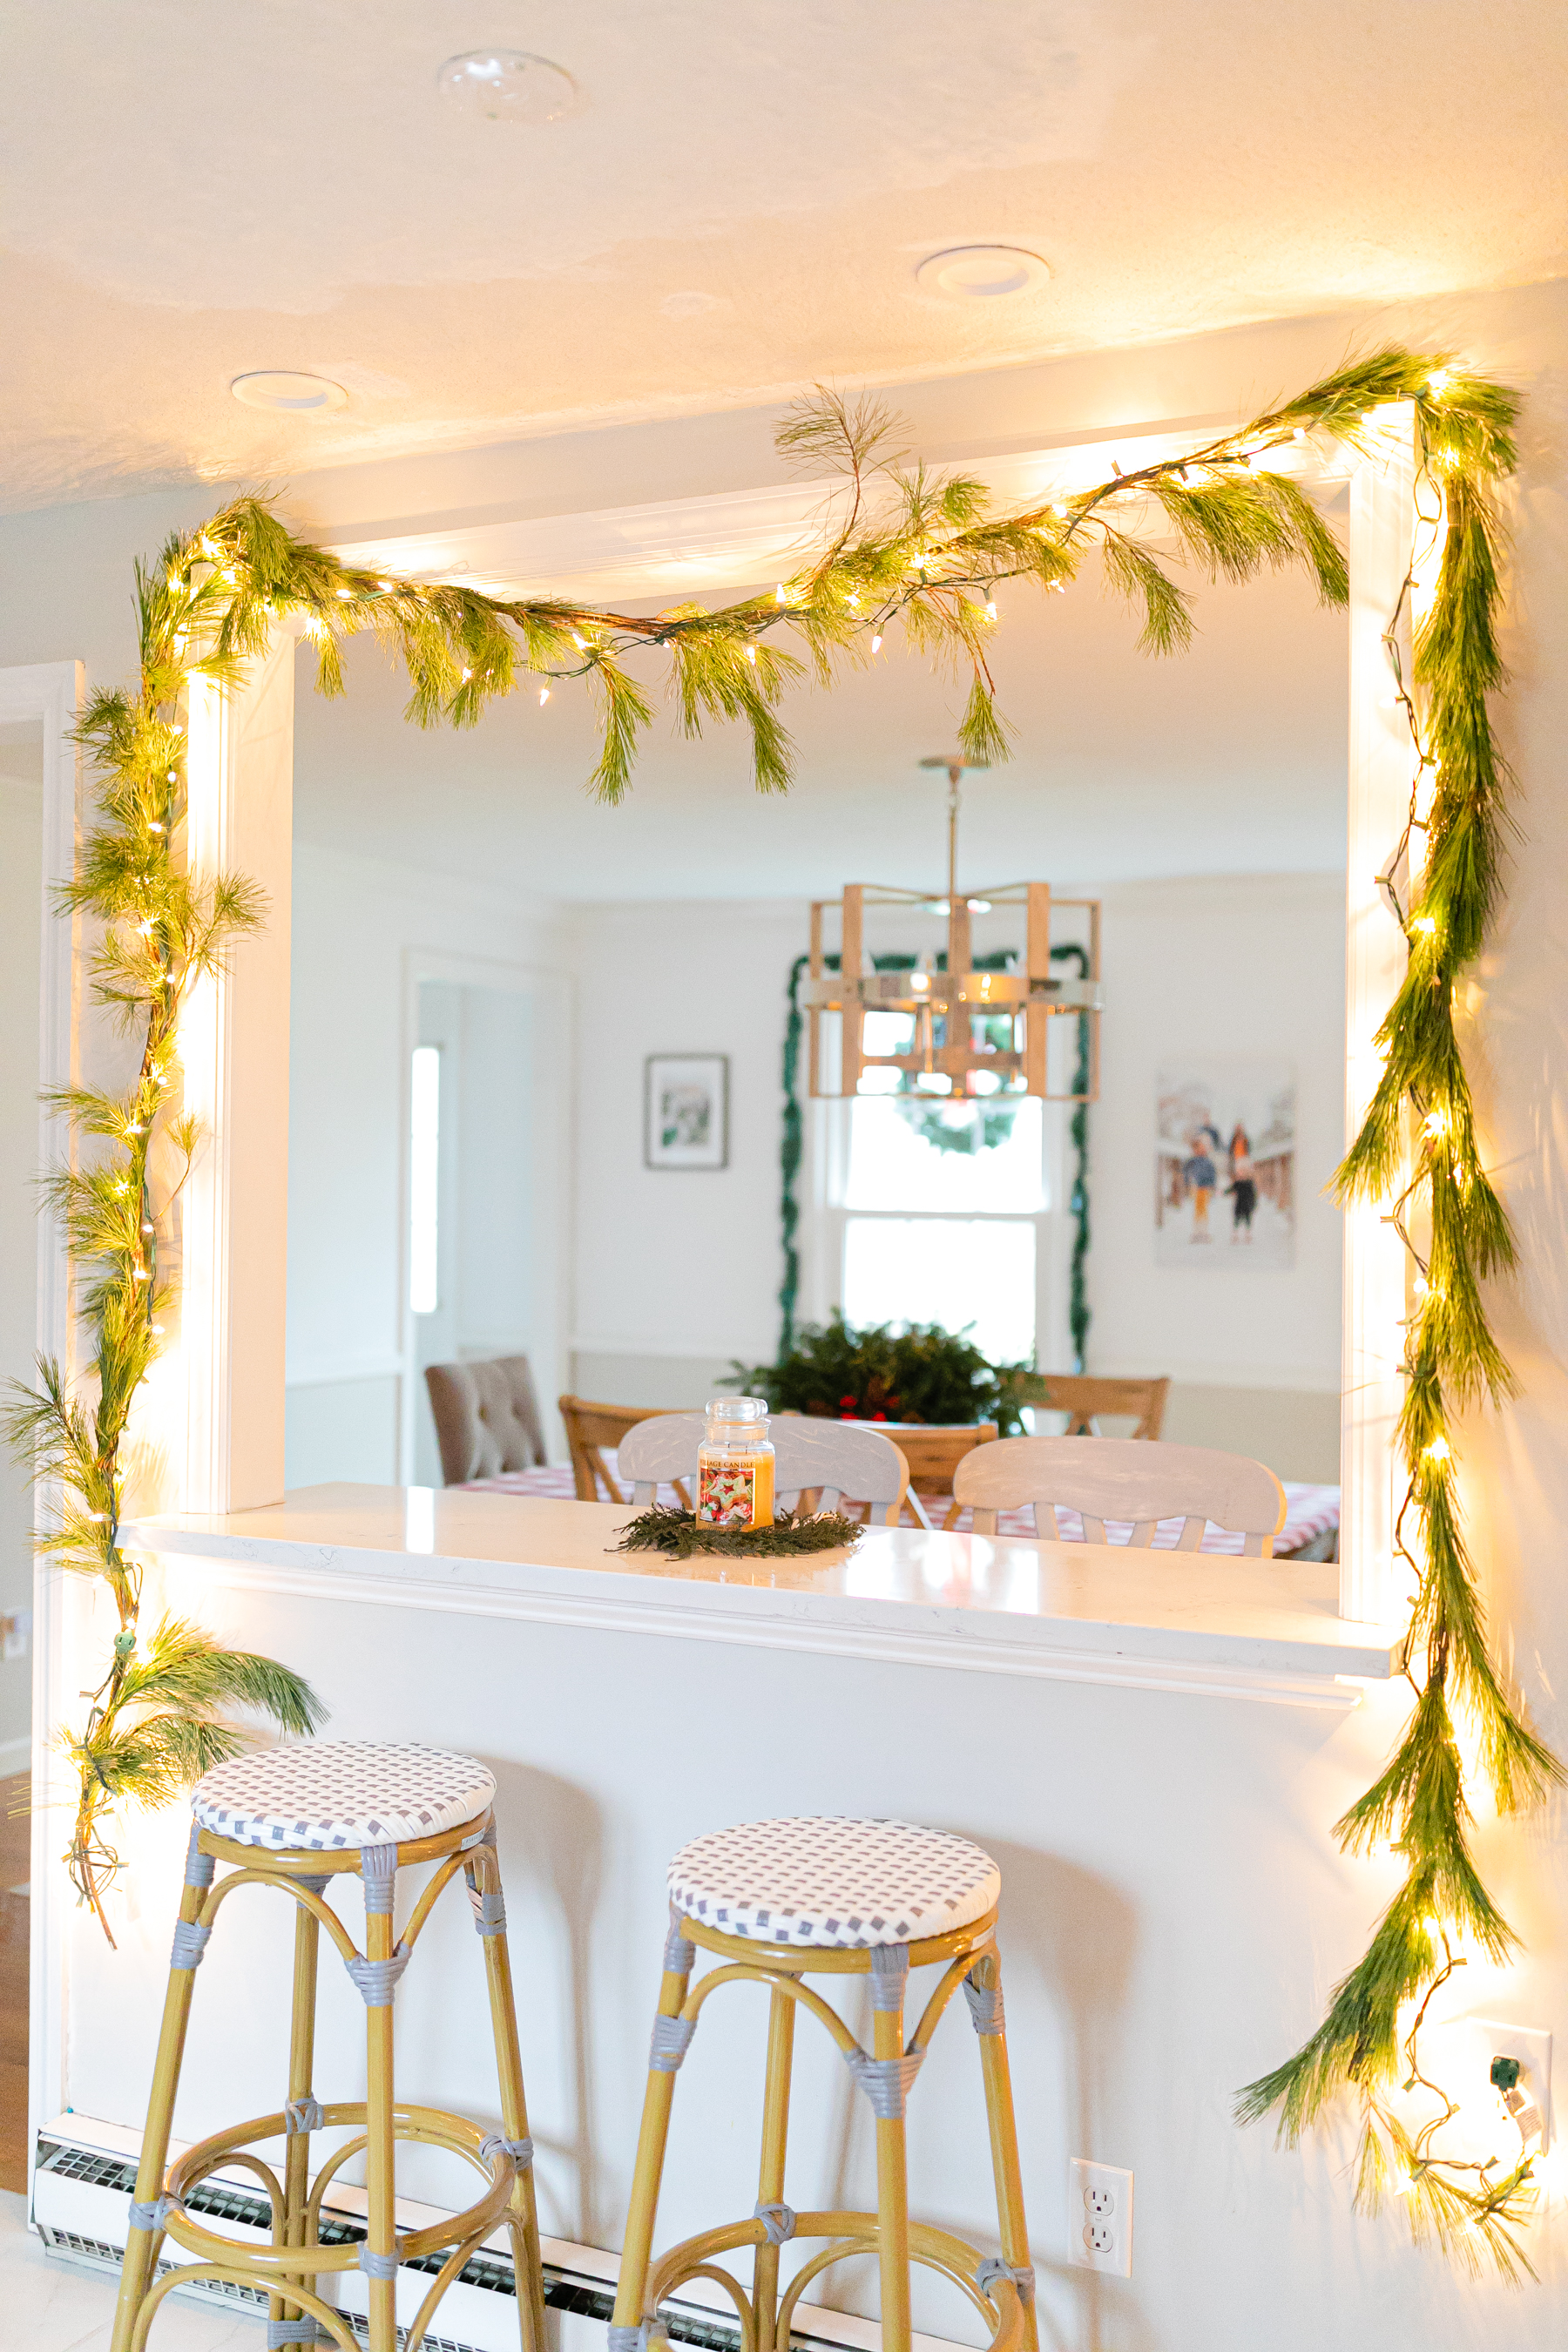 real garland above breakfast area in kitchen